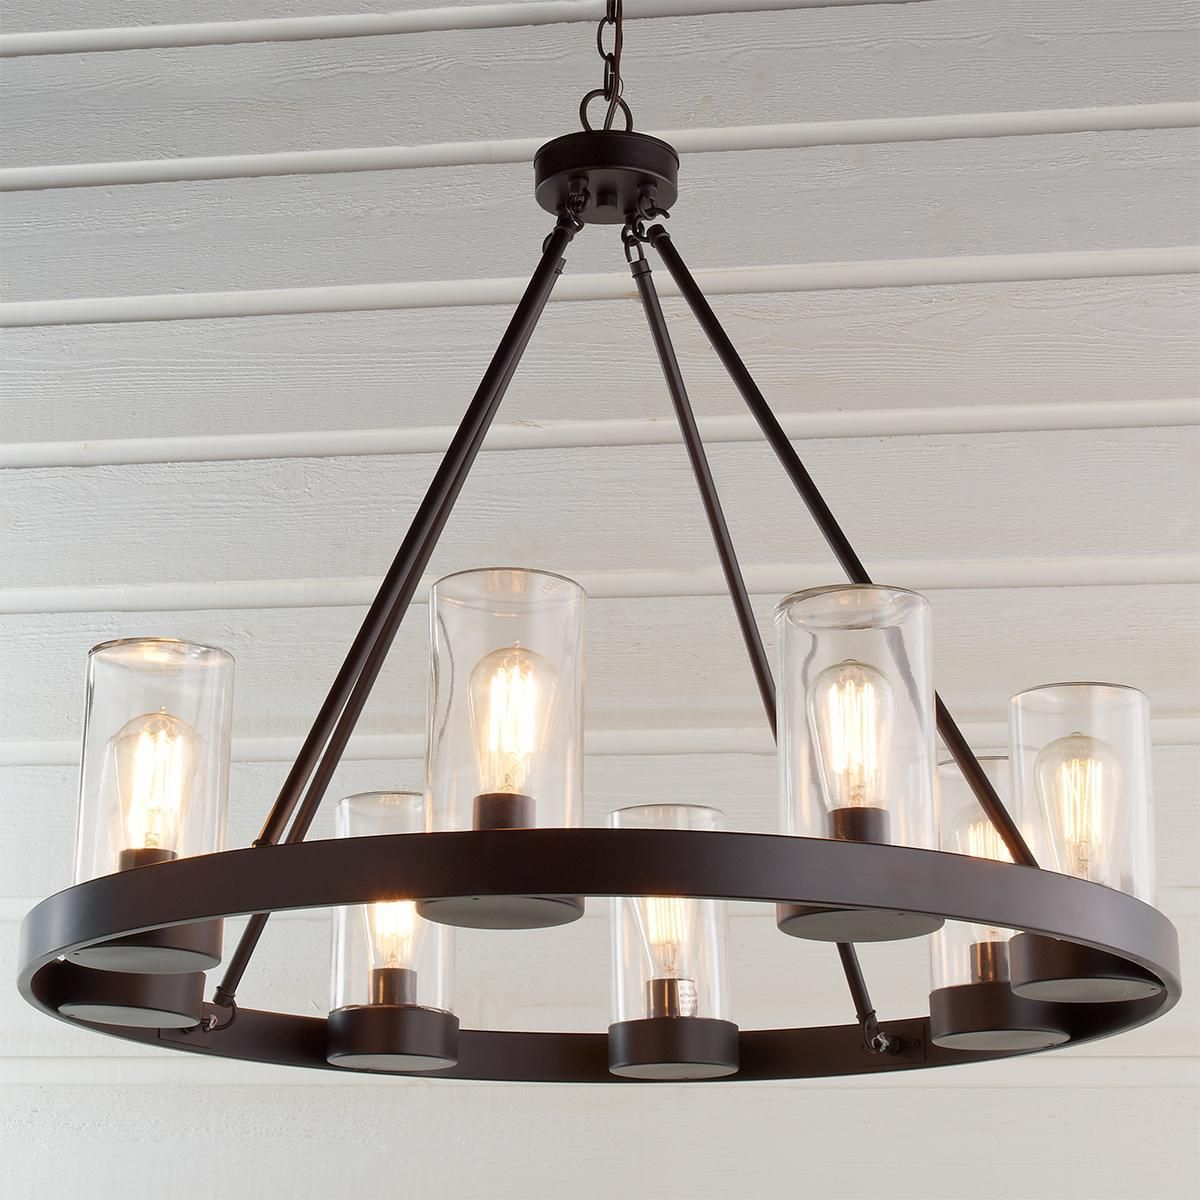 Indoor Outdoor Round Industrial Chandelier Shades Of Light